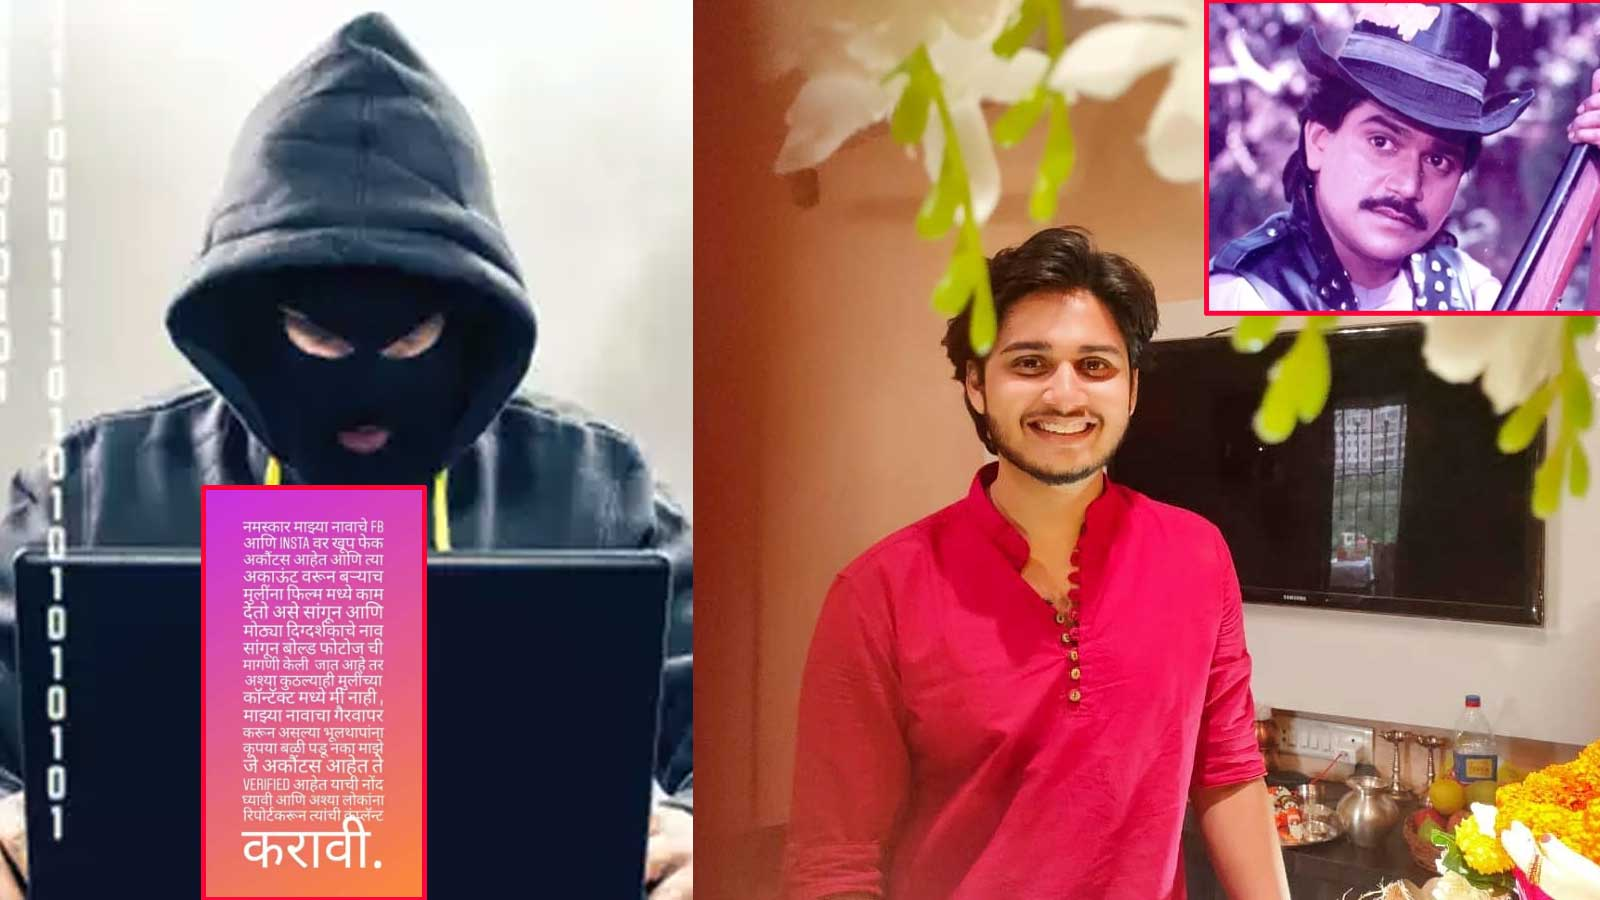 fraudster-poses-as-late-actor-laxmikant-berdes-son-abhinay-berde-asks-girl-to-send-bold-pics-for-film-role